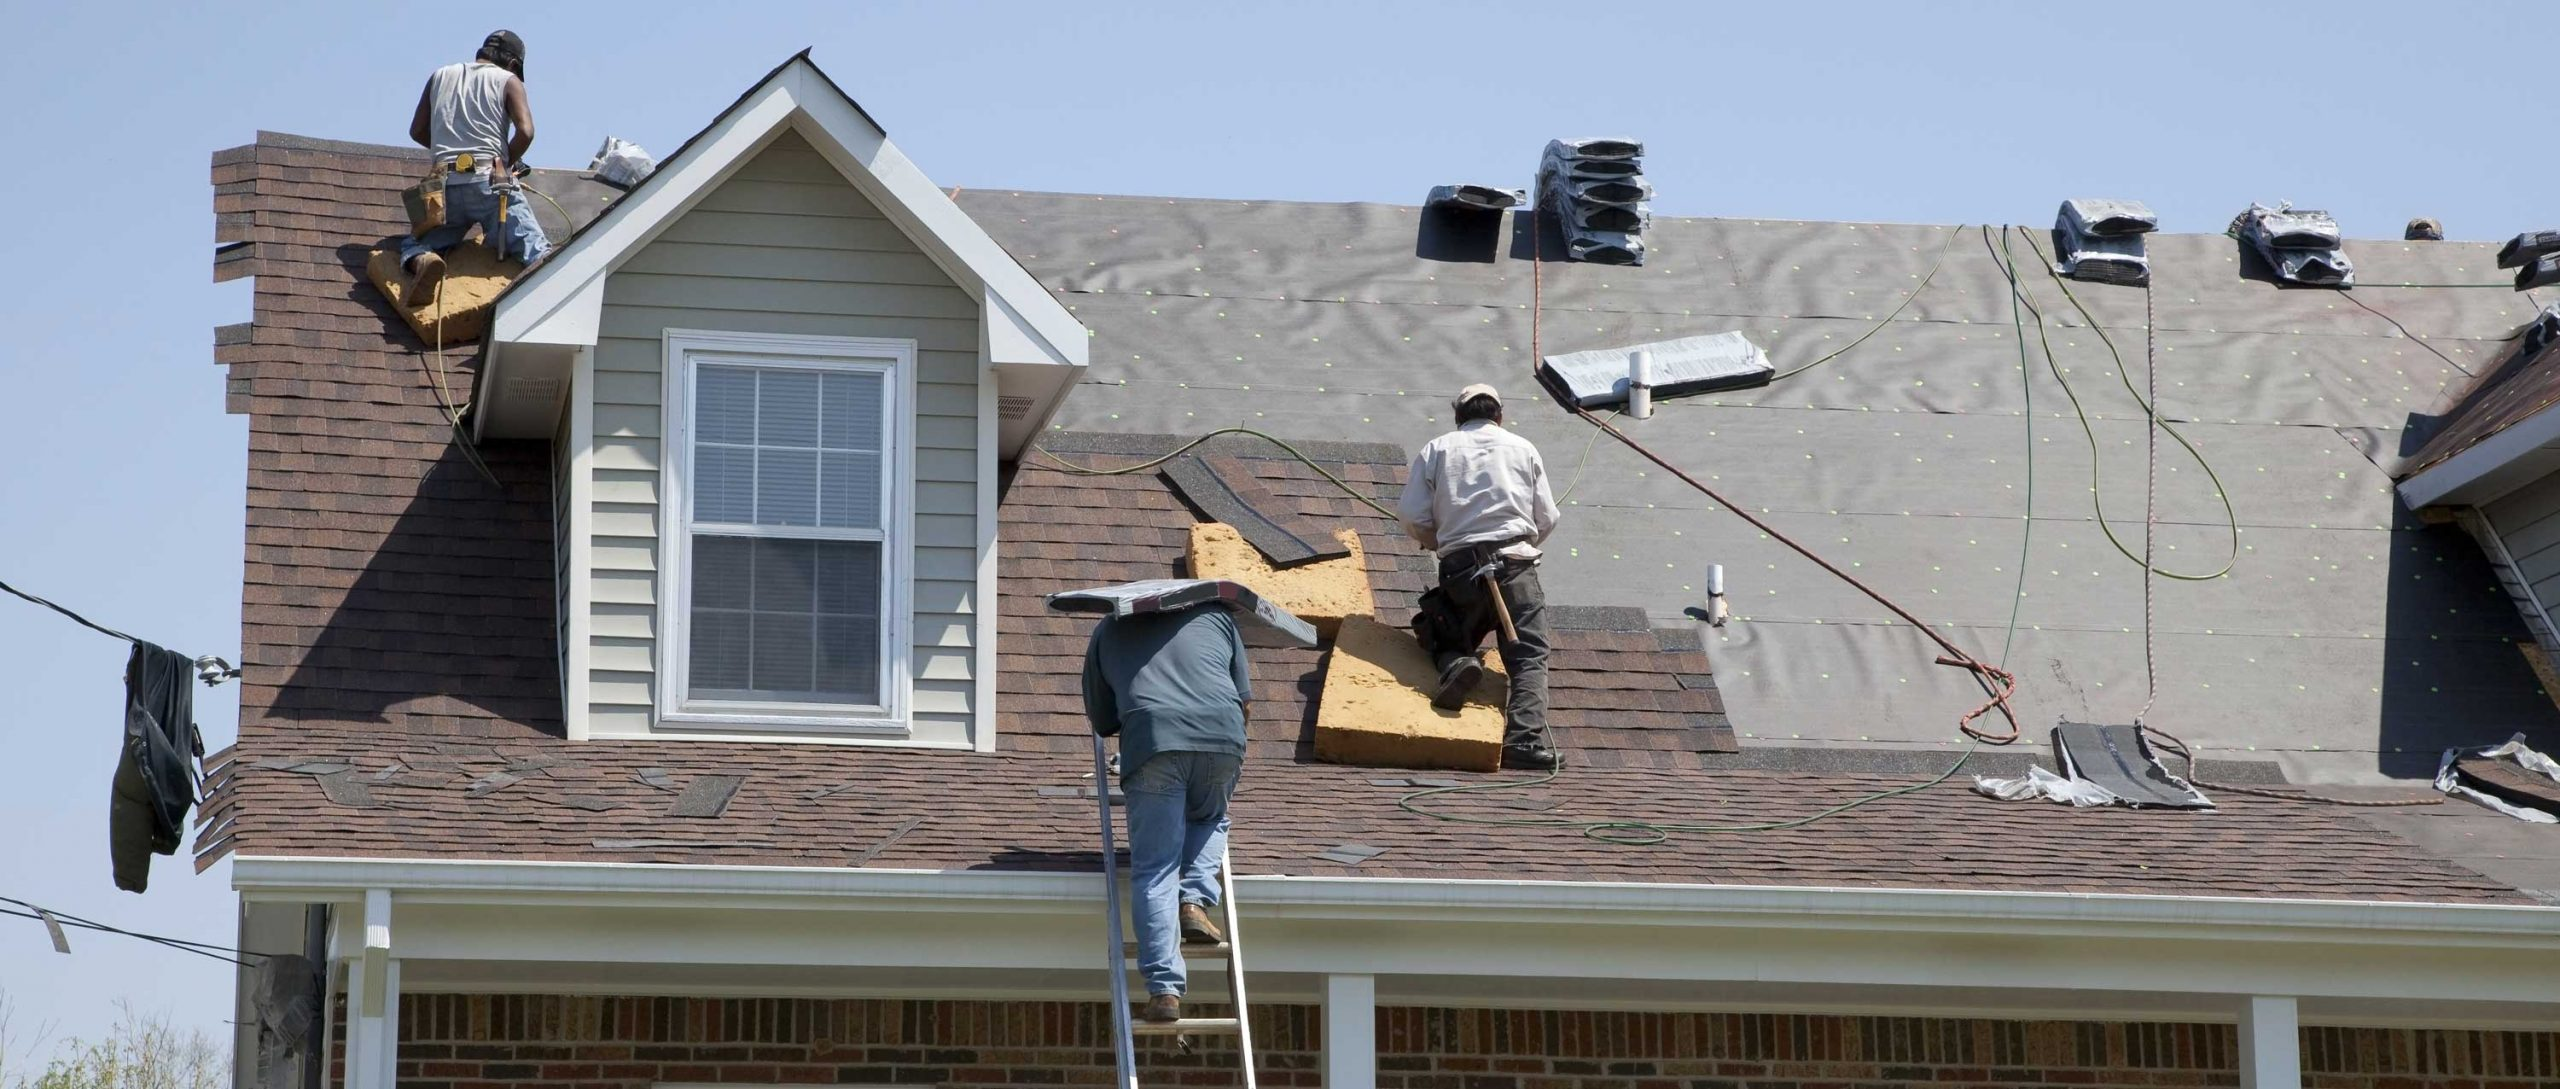 roofing workers repairing roof